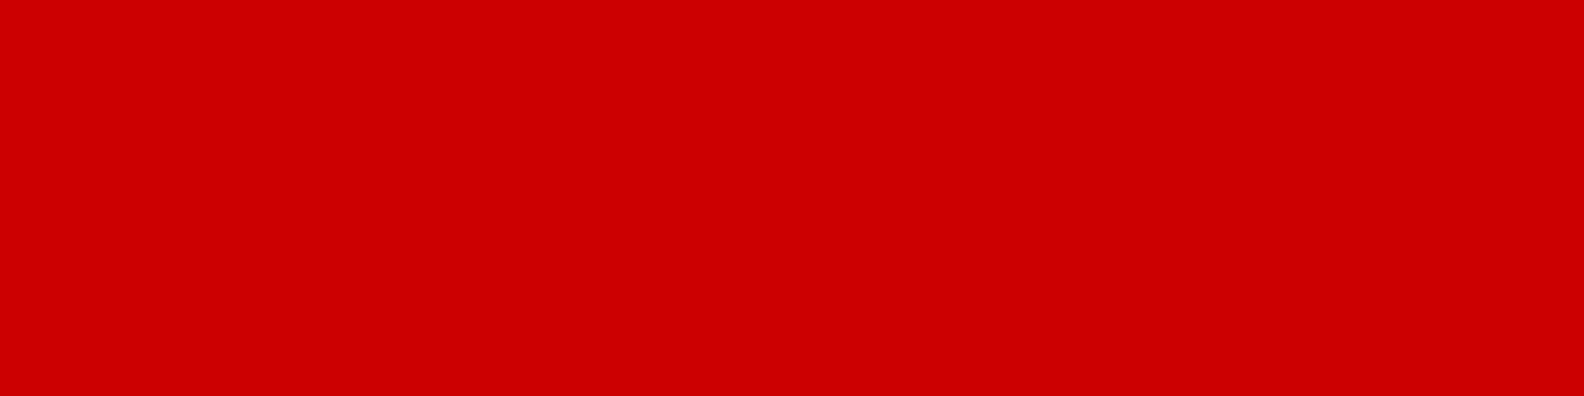 1584x396 Boston University Red Solid Color Background